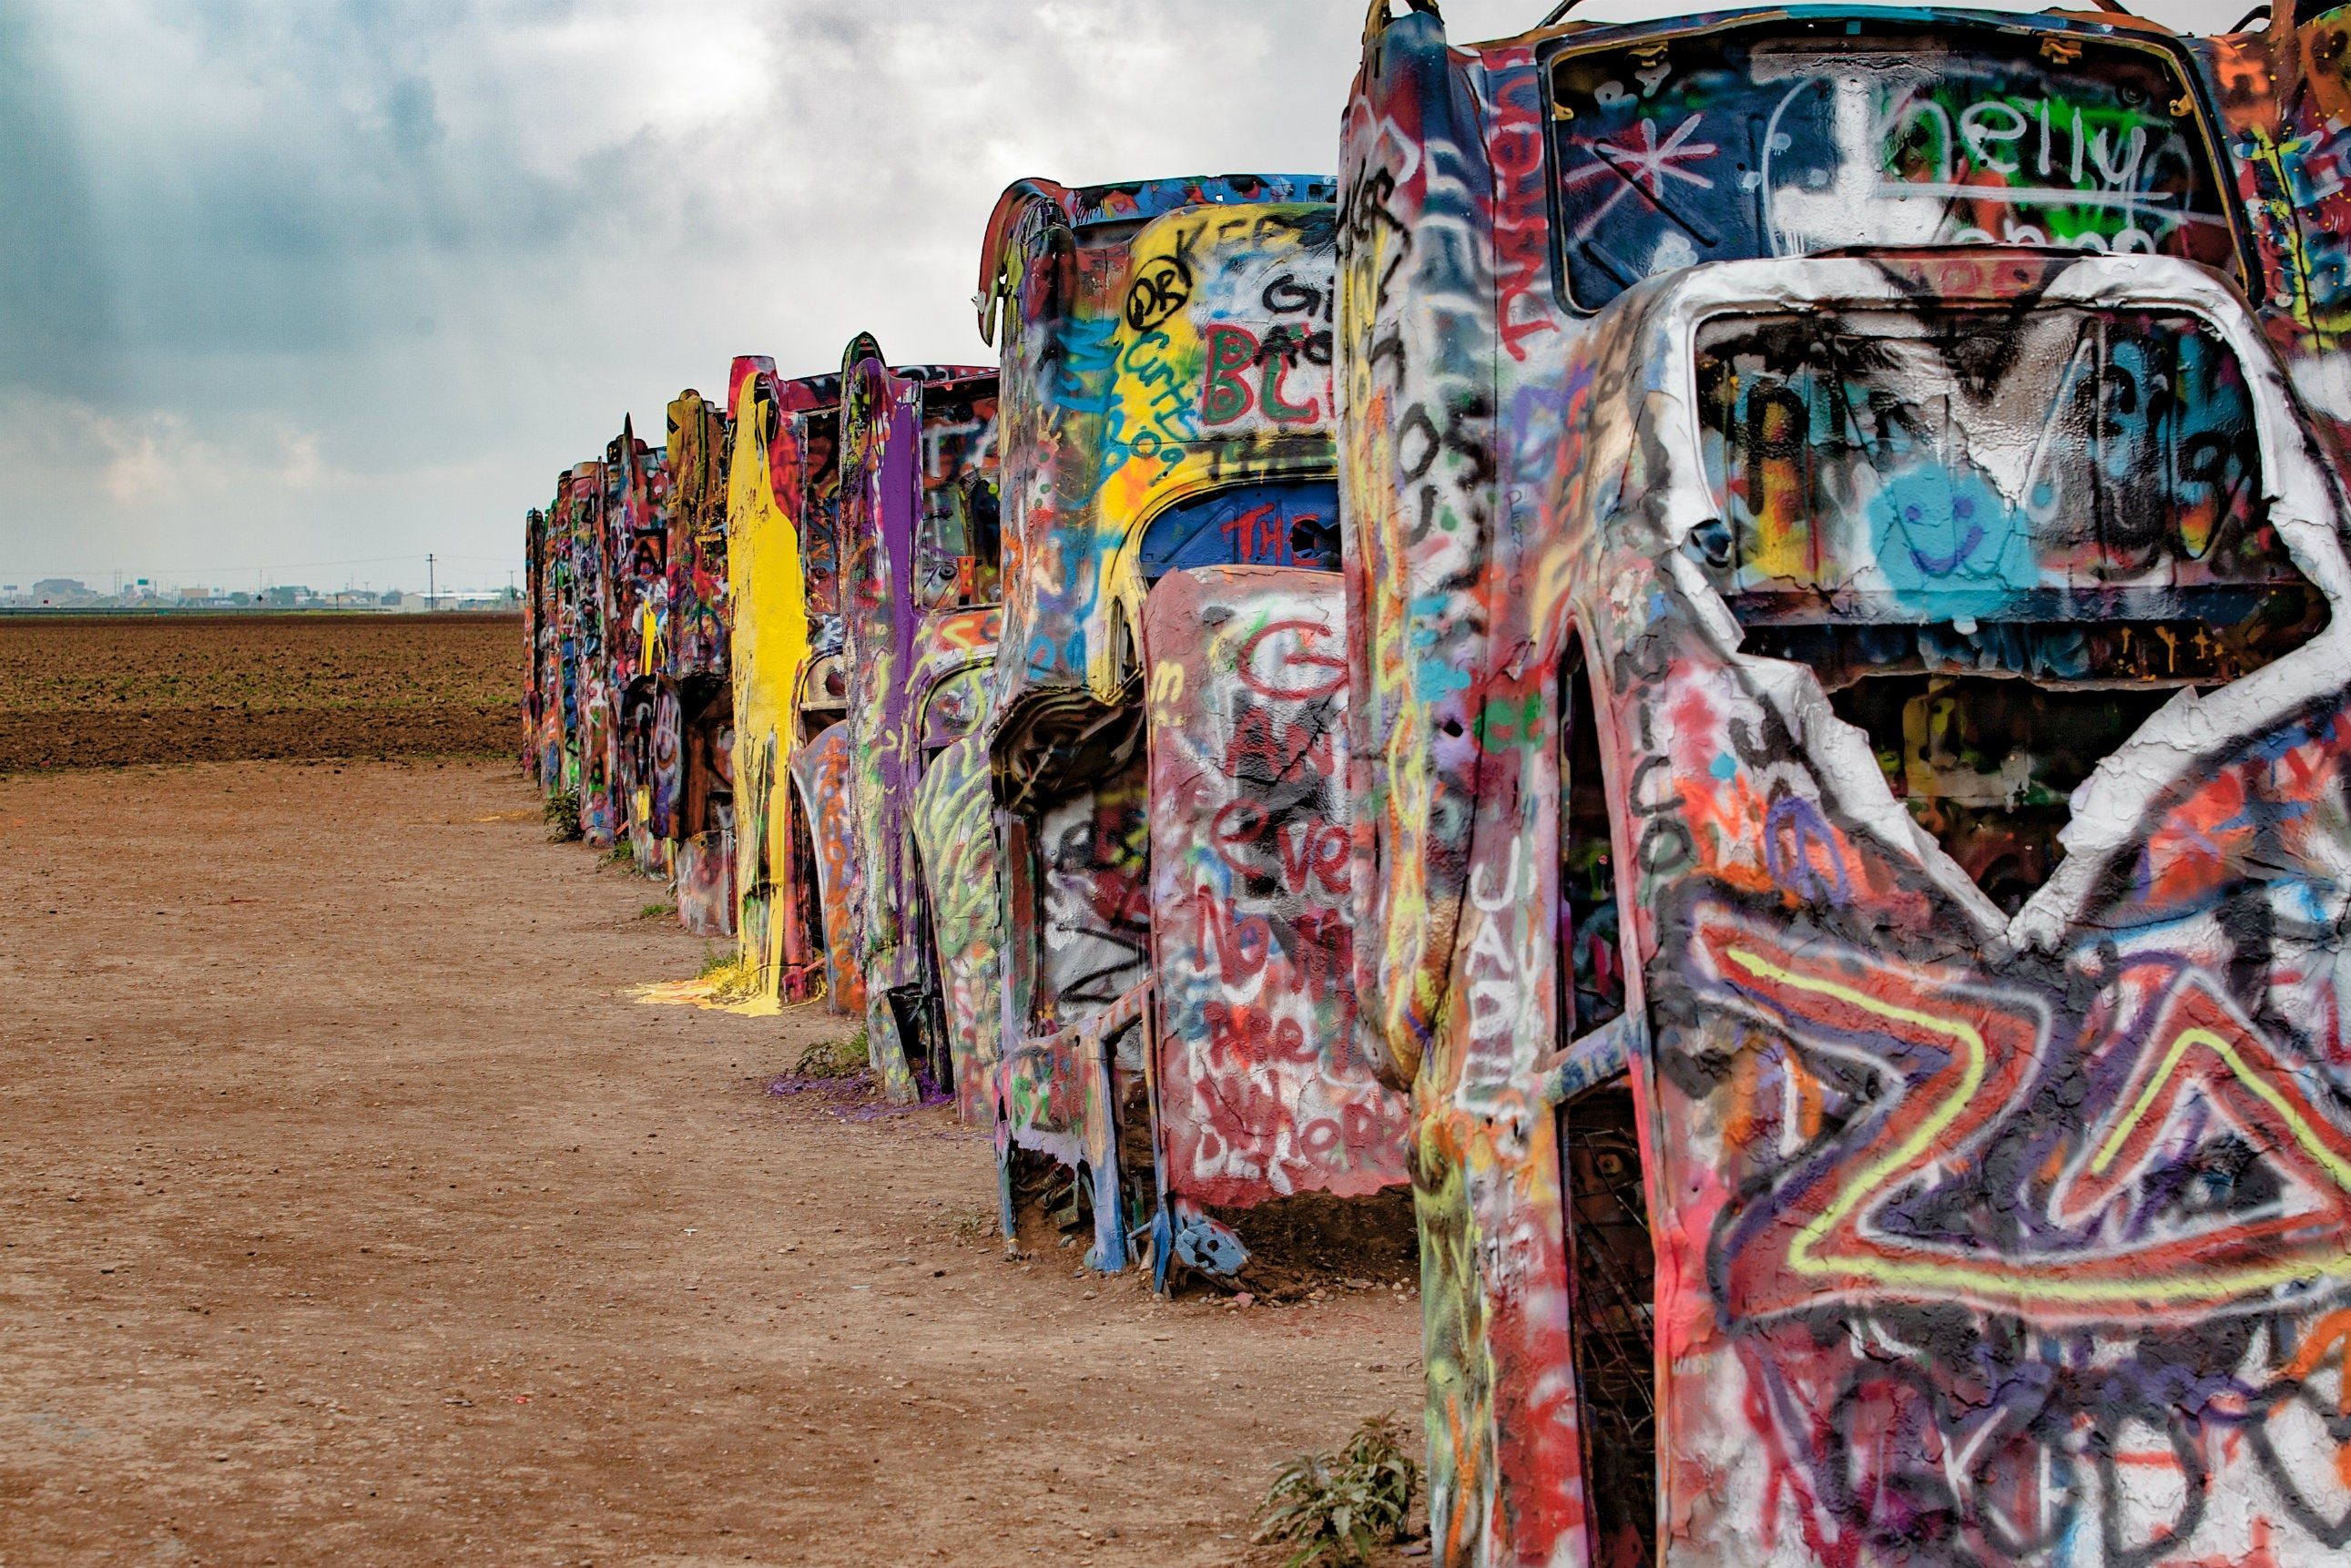 How To Lease A Car With Bad Credit >> The 10 Best Roadside Attractions in America | Credit.com